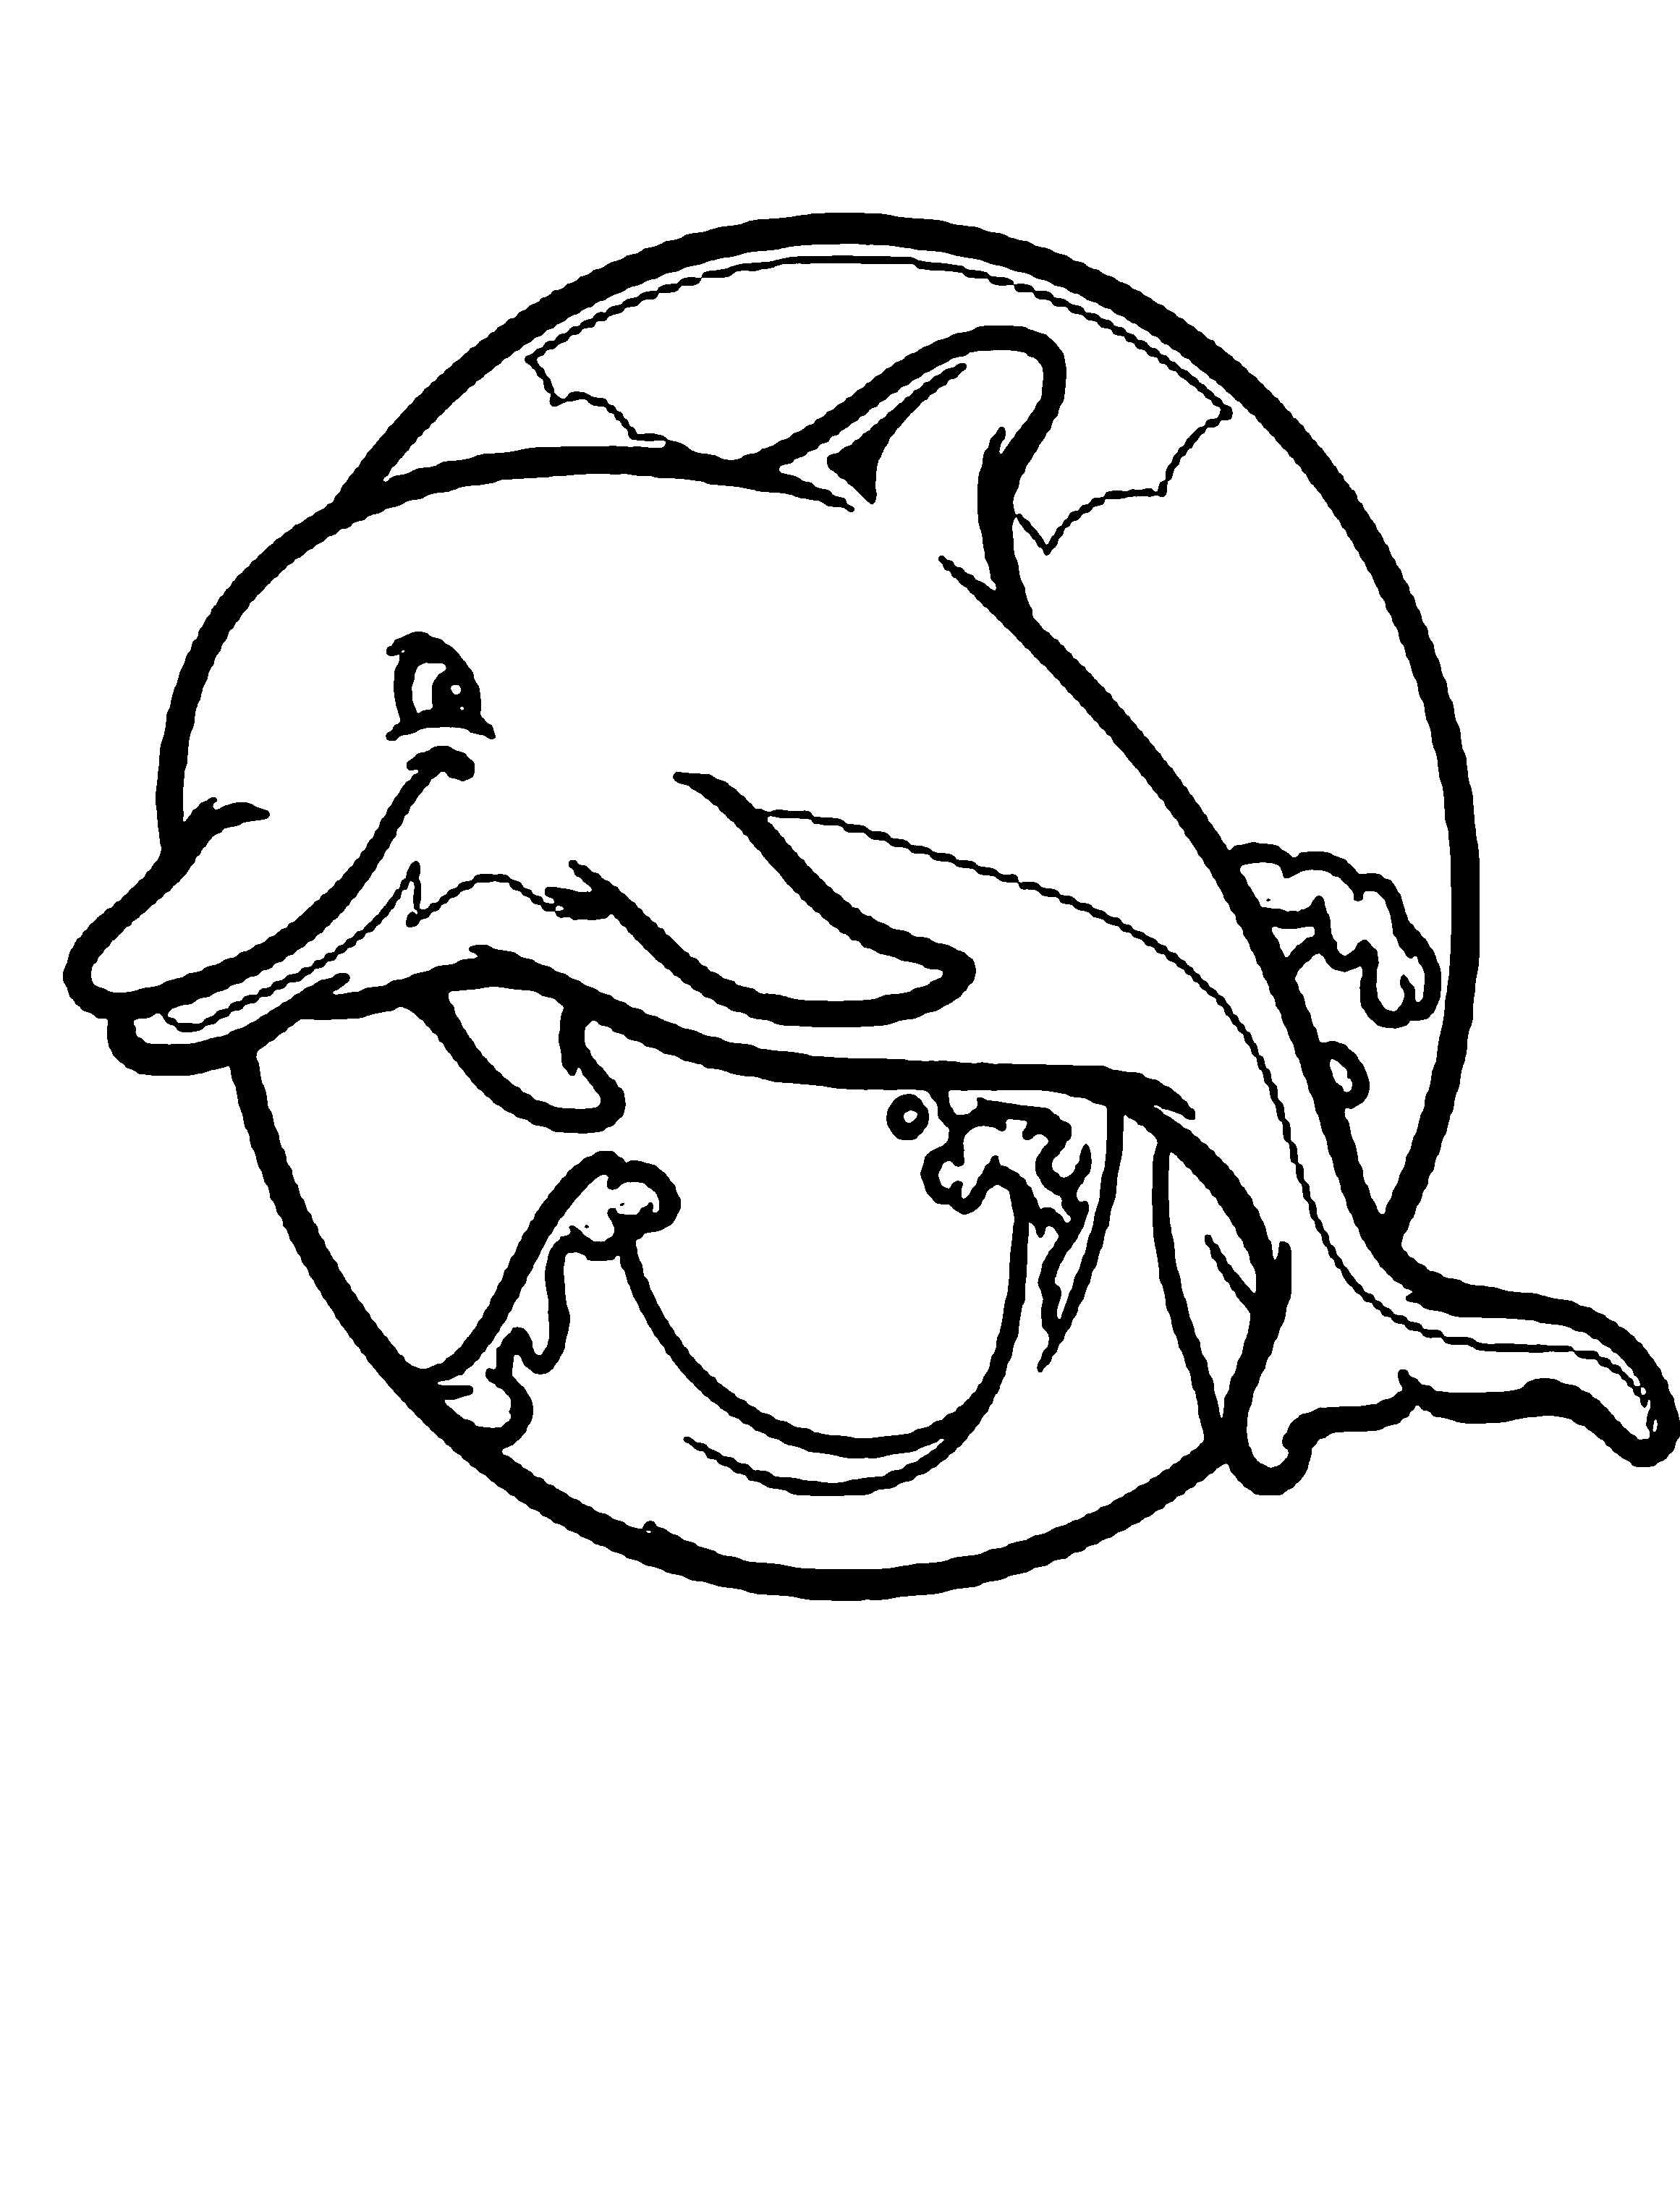 free dolphin coloring pages dolphin coloring pages download and print for free dolphin coloring pages free